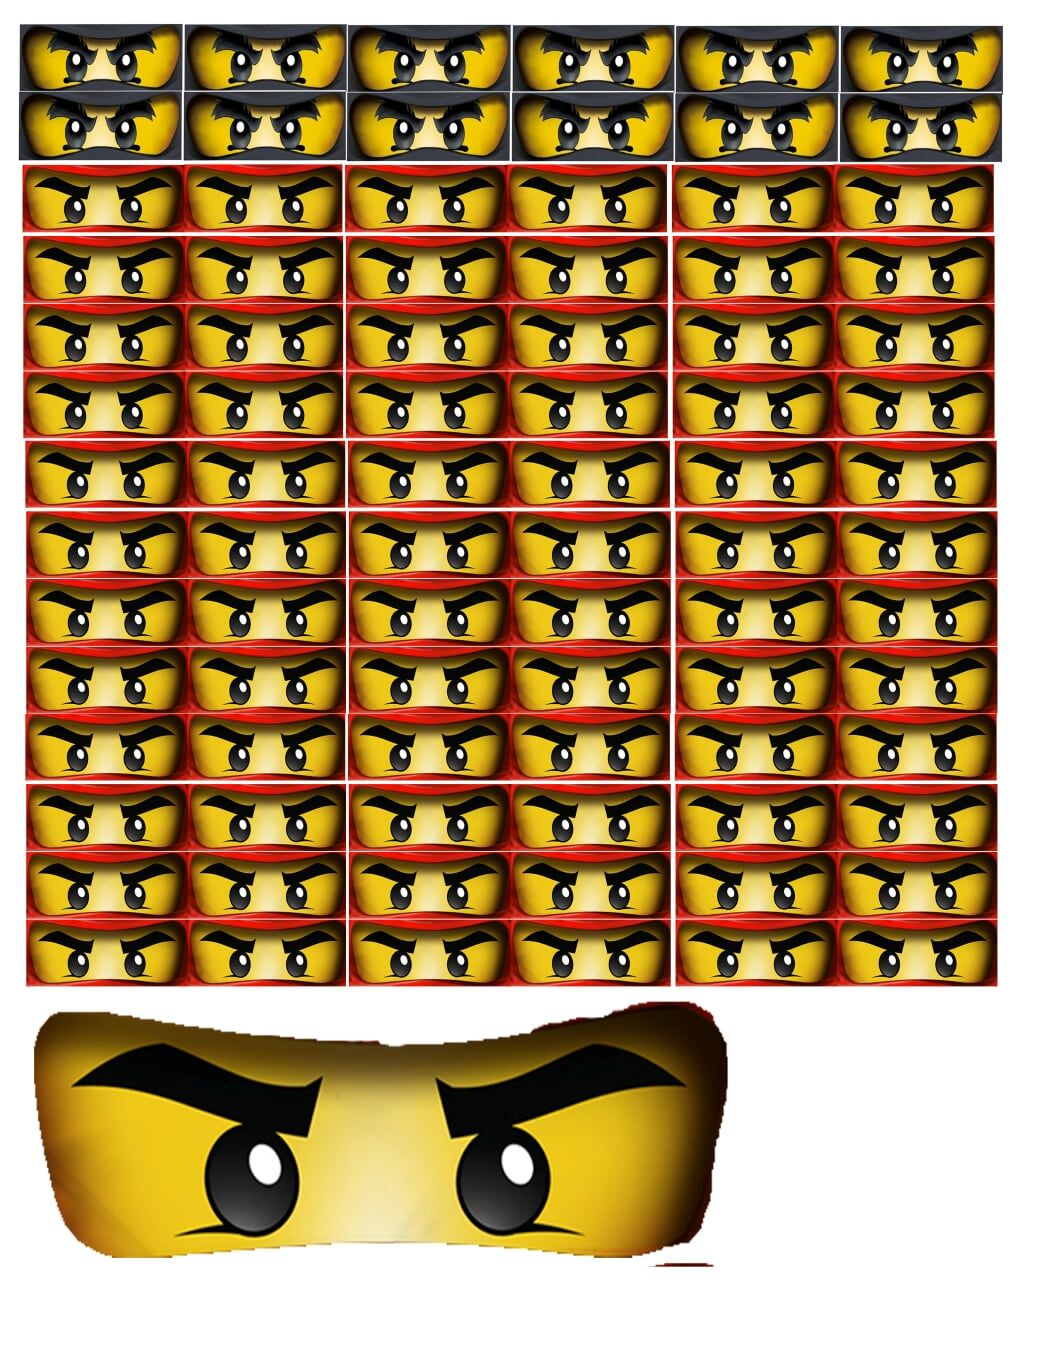 It is a graphic of Printable Ninjago Eyes within transparent